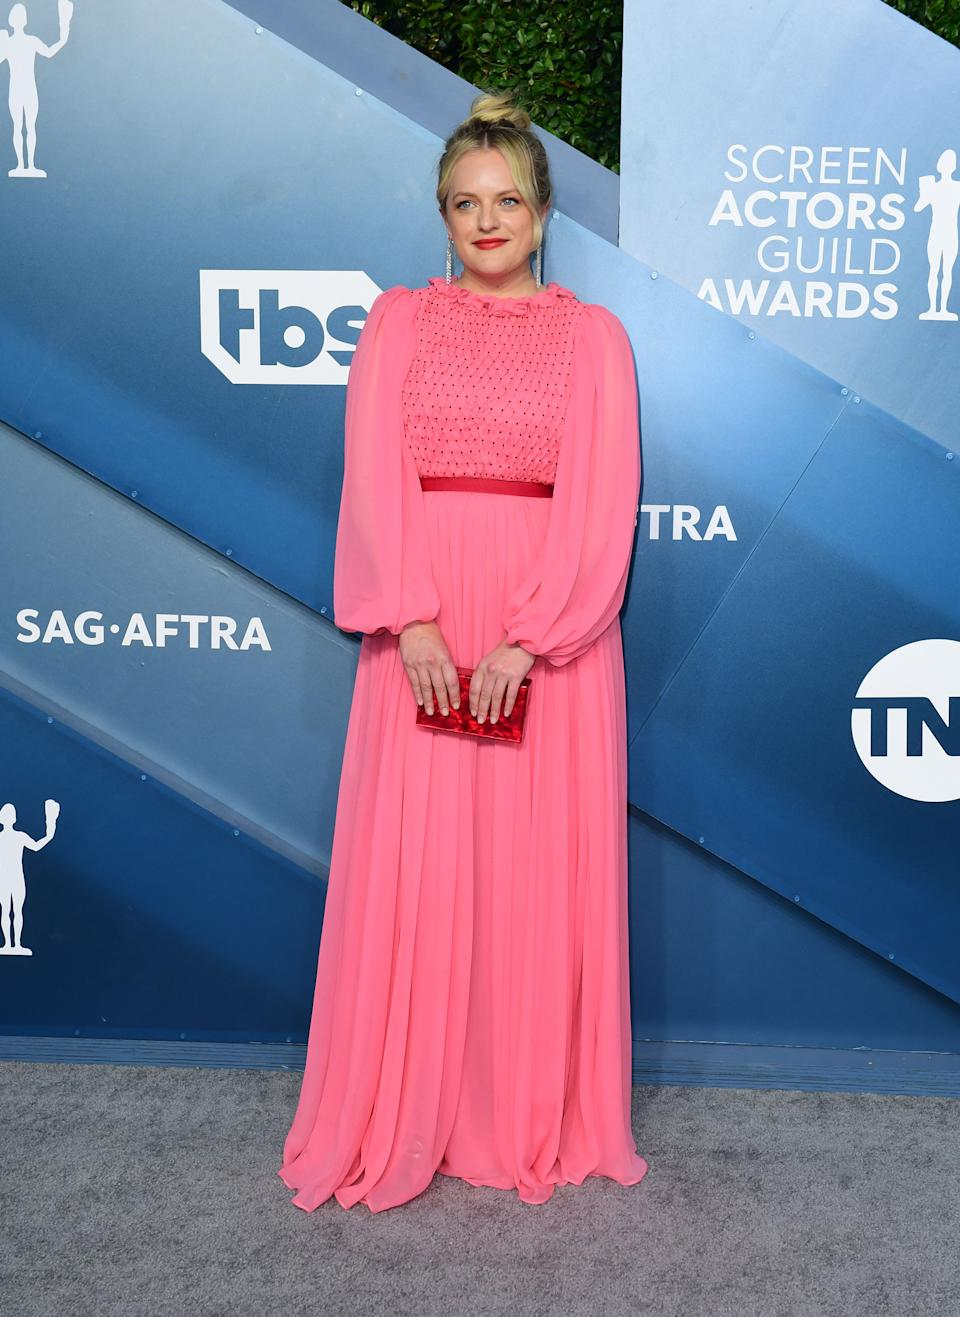 """Moss traded her """"Handmaids Tale"""" rob for a 1970s inspired pink and red look by Monique Lhuillier."""